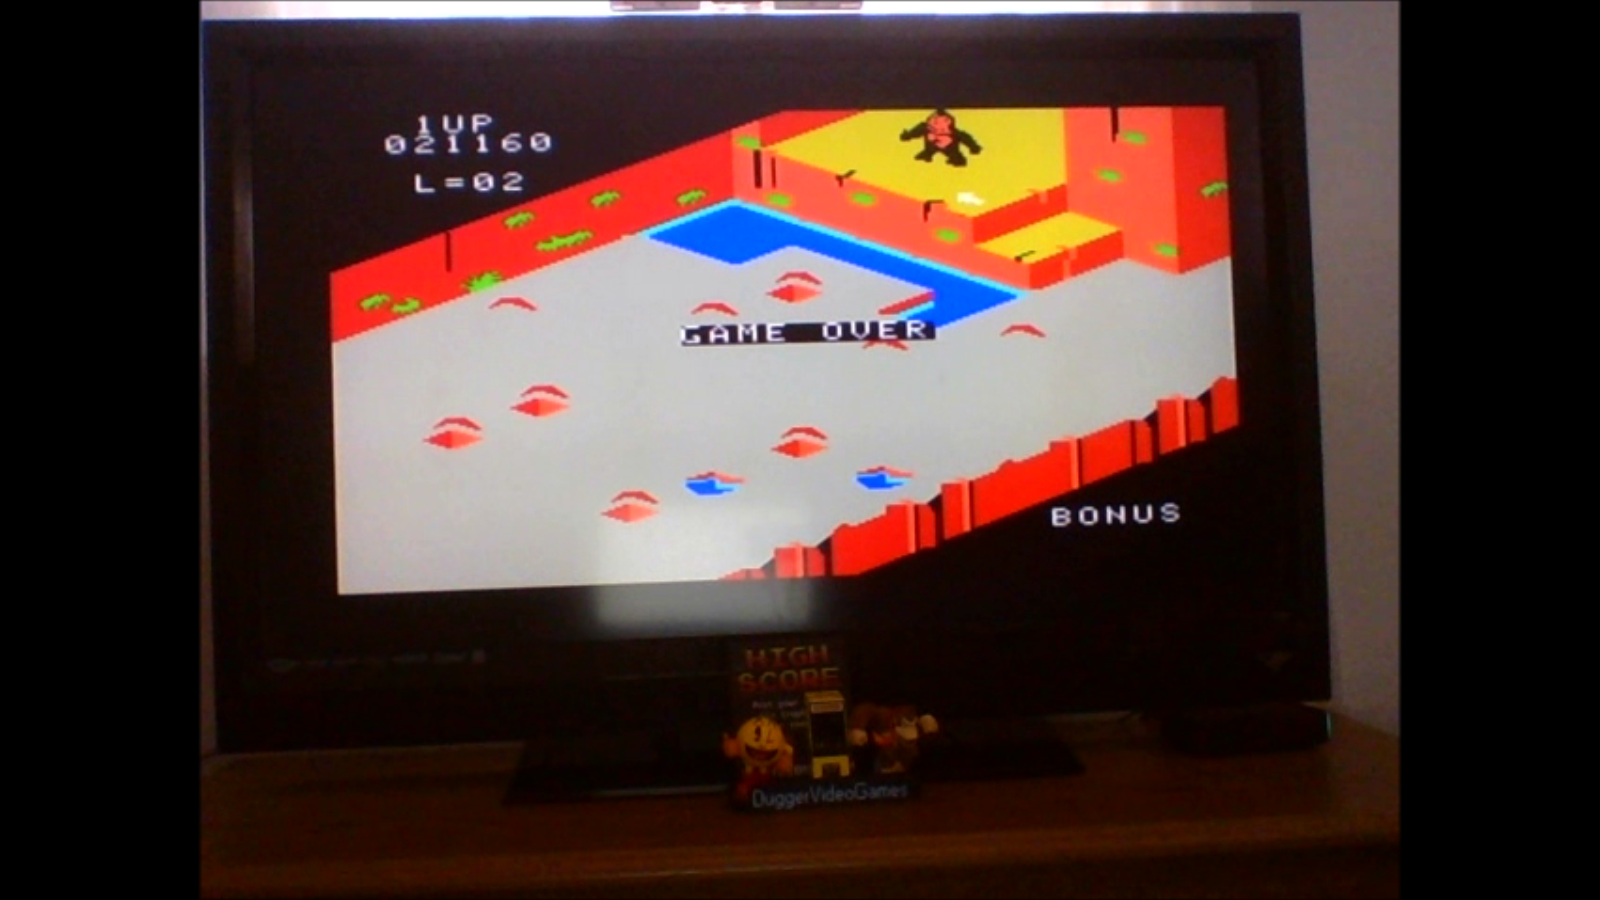 DuggerVideoGames: Congo Bongo (Colecovision Emulated) 21,160 points on 2017-02-16 13:30:40